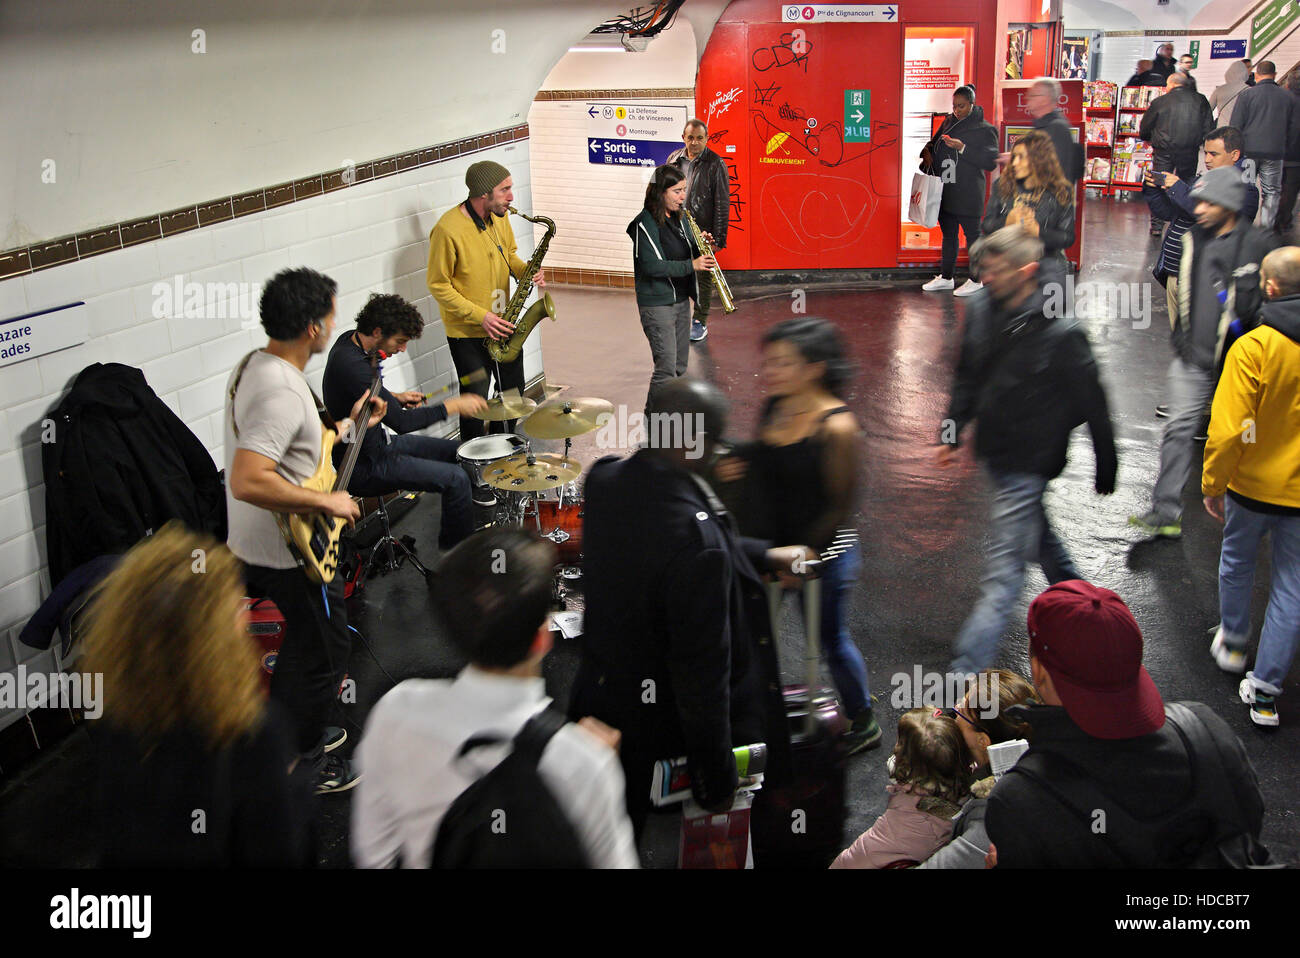 Music band (called 'Les Mutants de l'Espace') playing in a metro station of Paris, France. - Stock Image